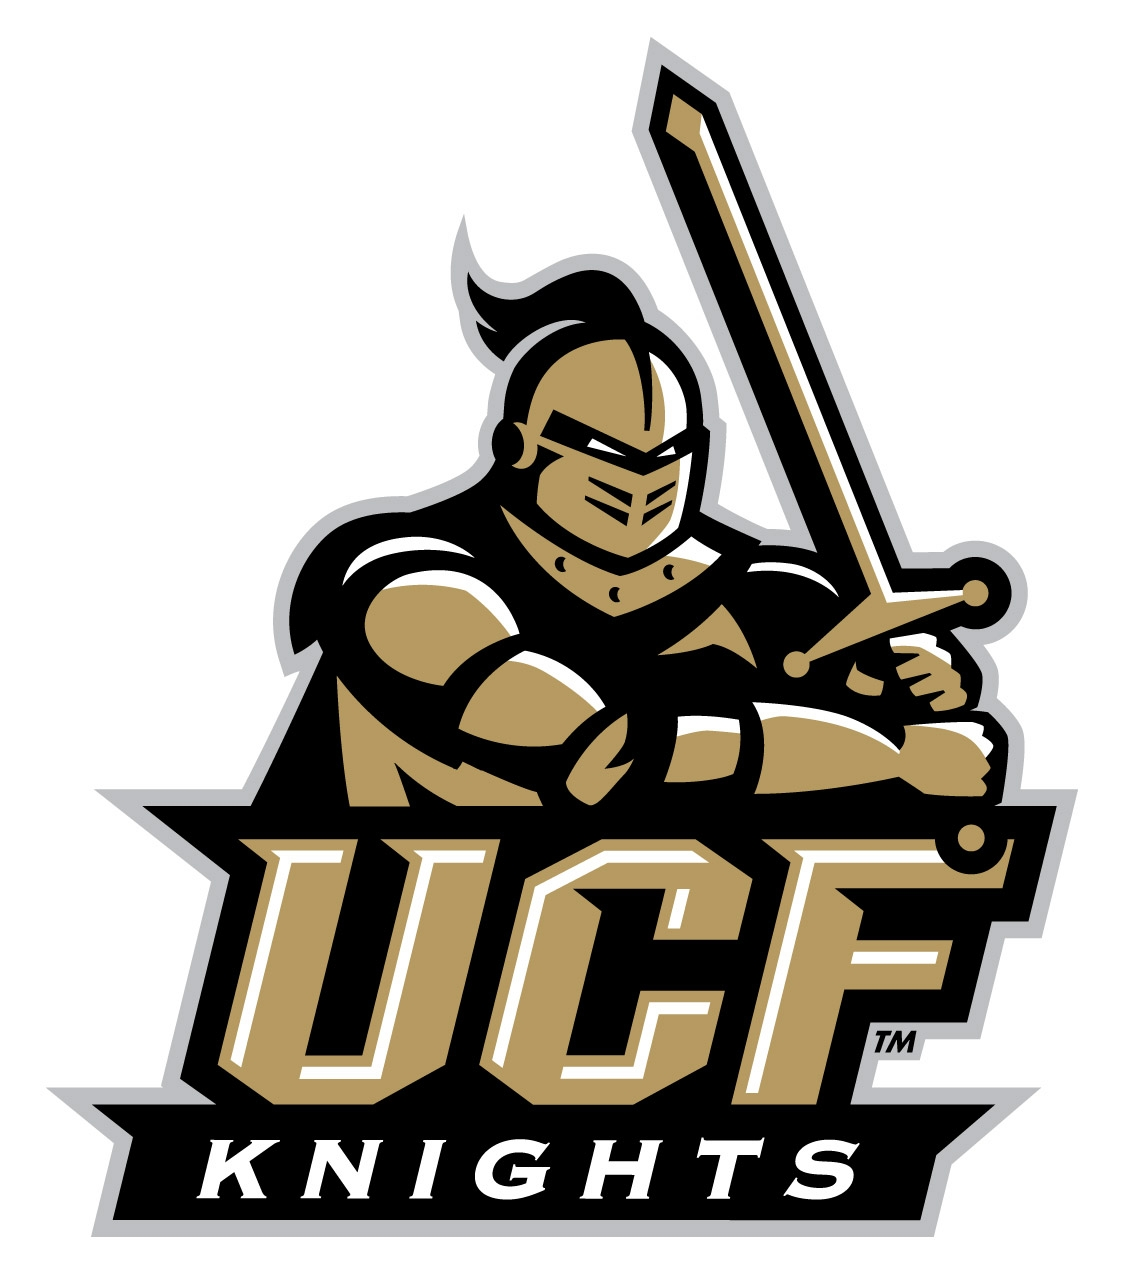 Unversity of Central Florida